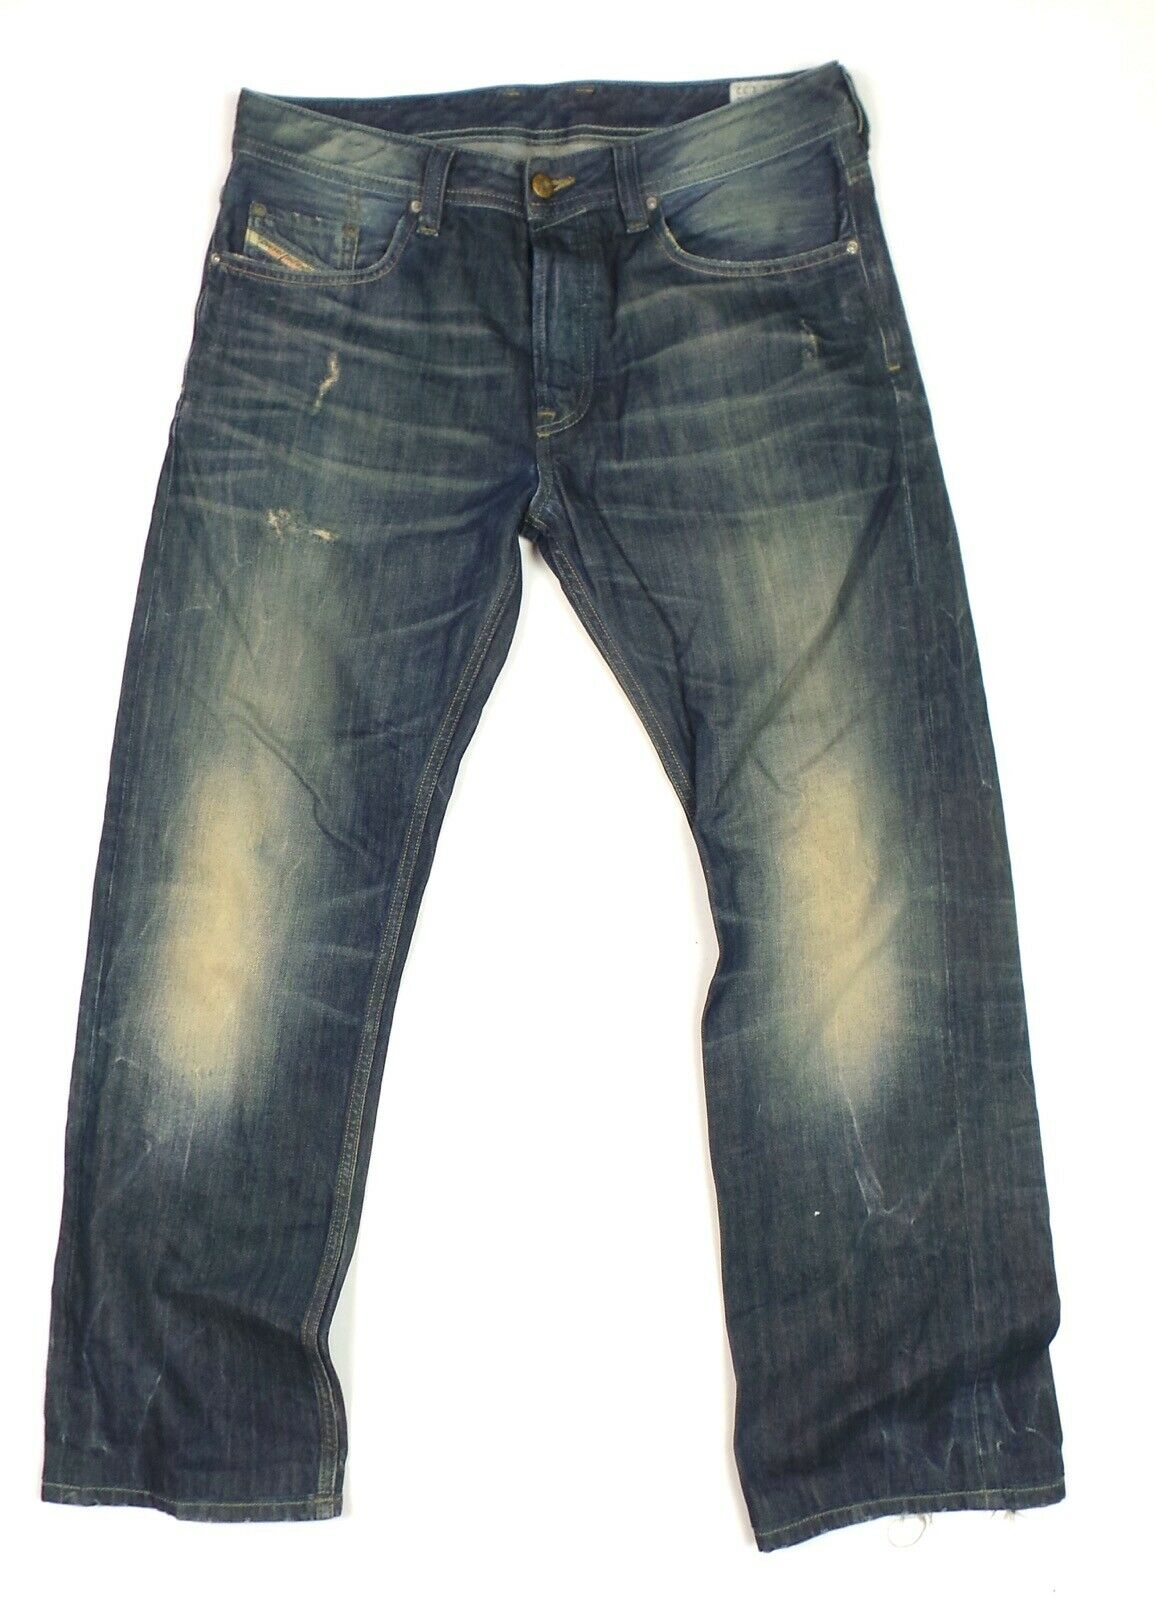 Diesel Comfort Straight LARKEE Relaxed Wash 0805U Men's Jeans Size 31 x 29